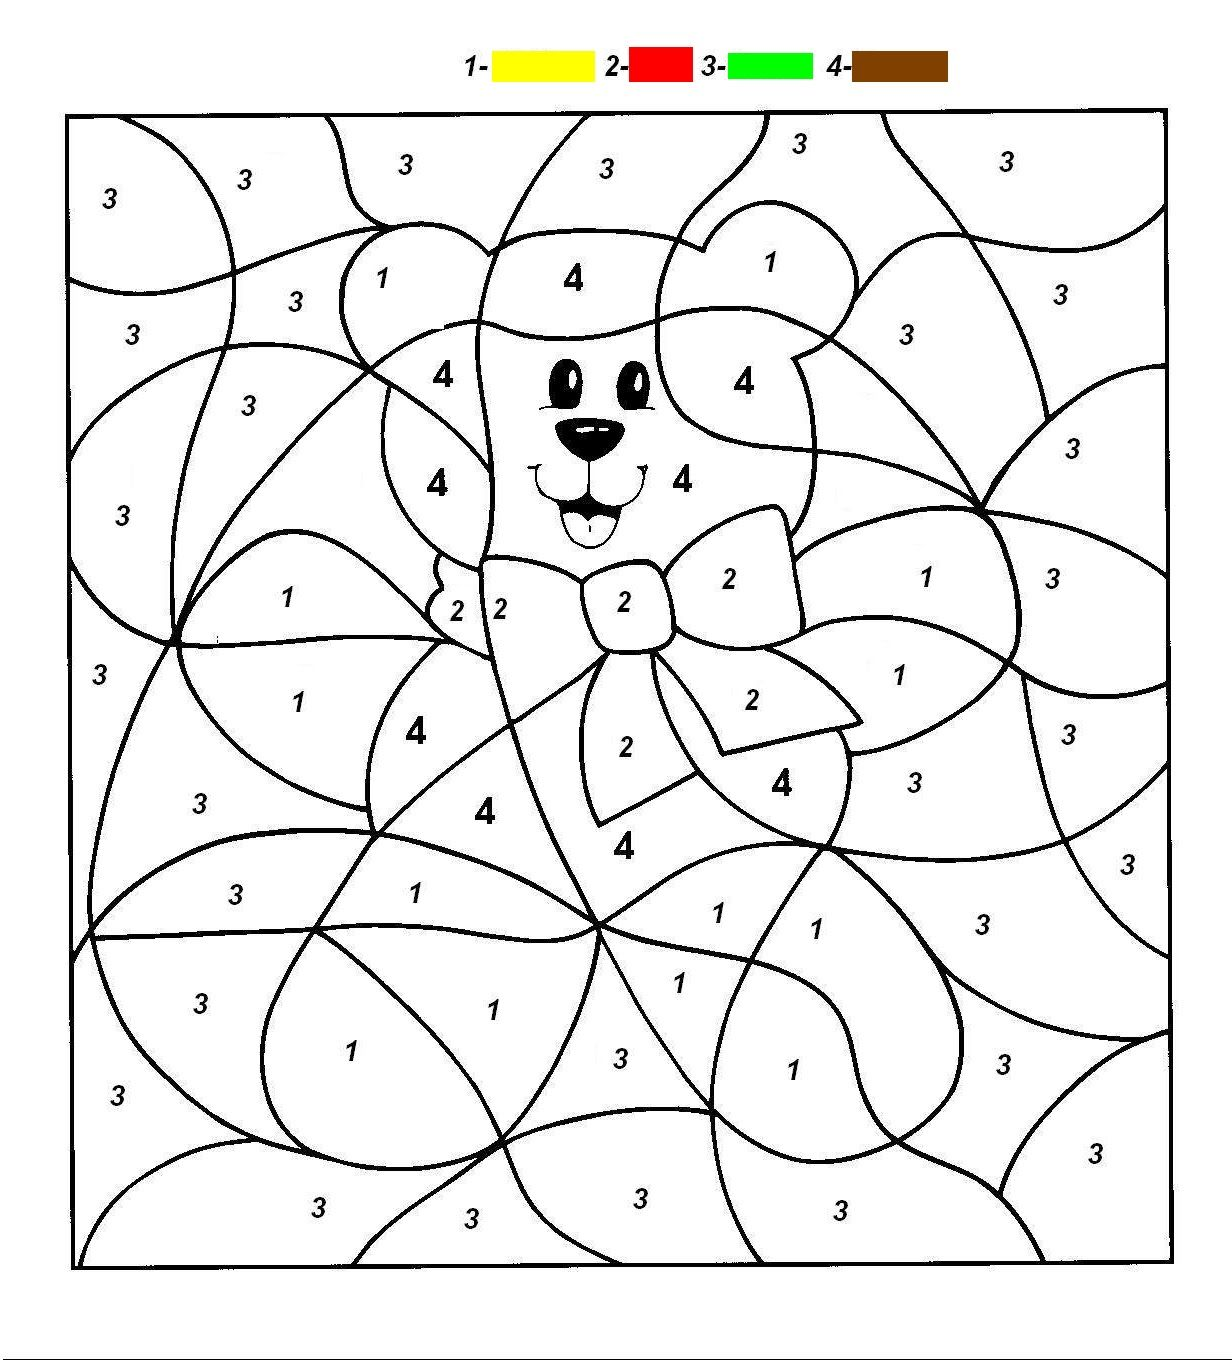 27 Inspiration Image Of Printable Number Coloring Pages